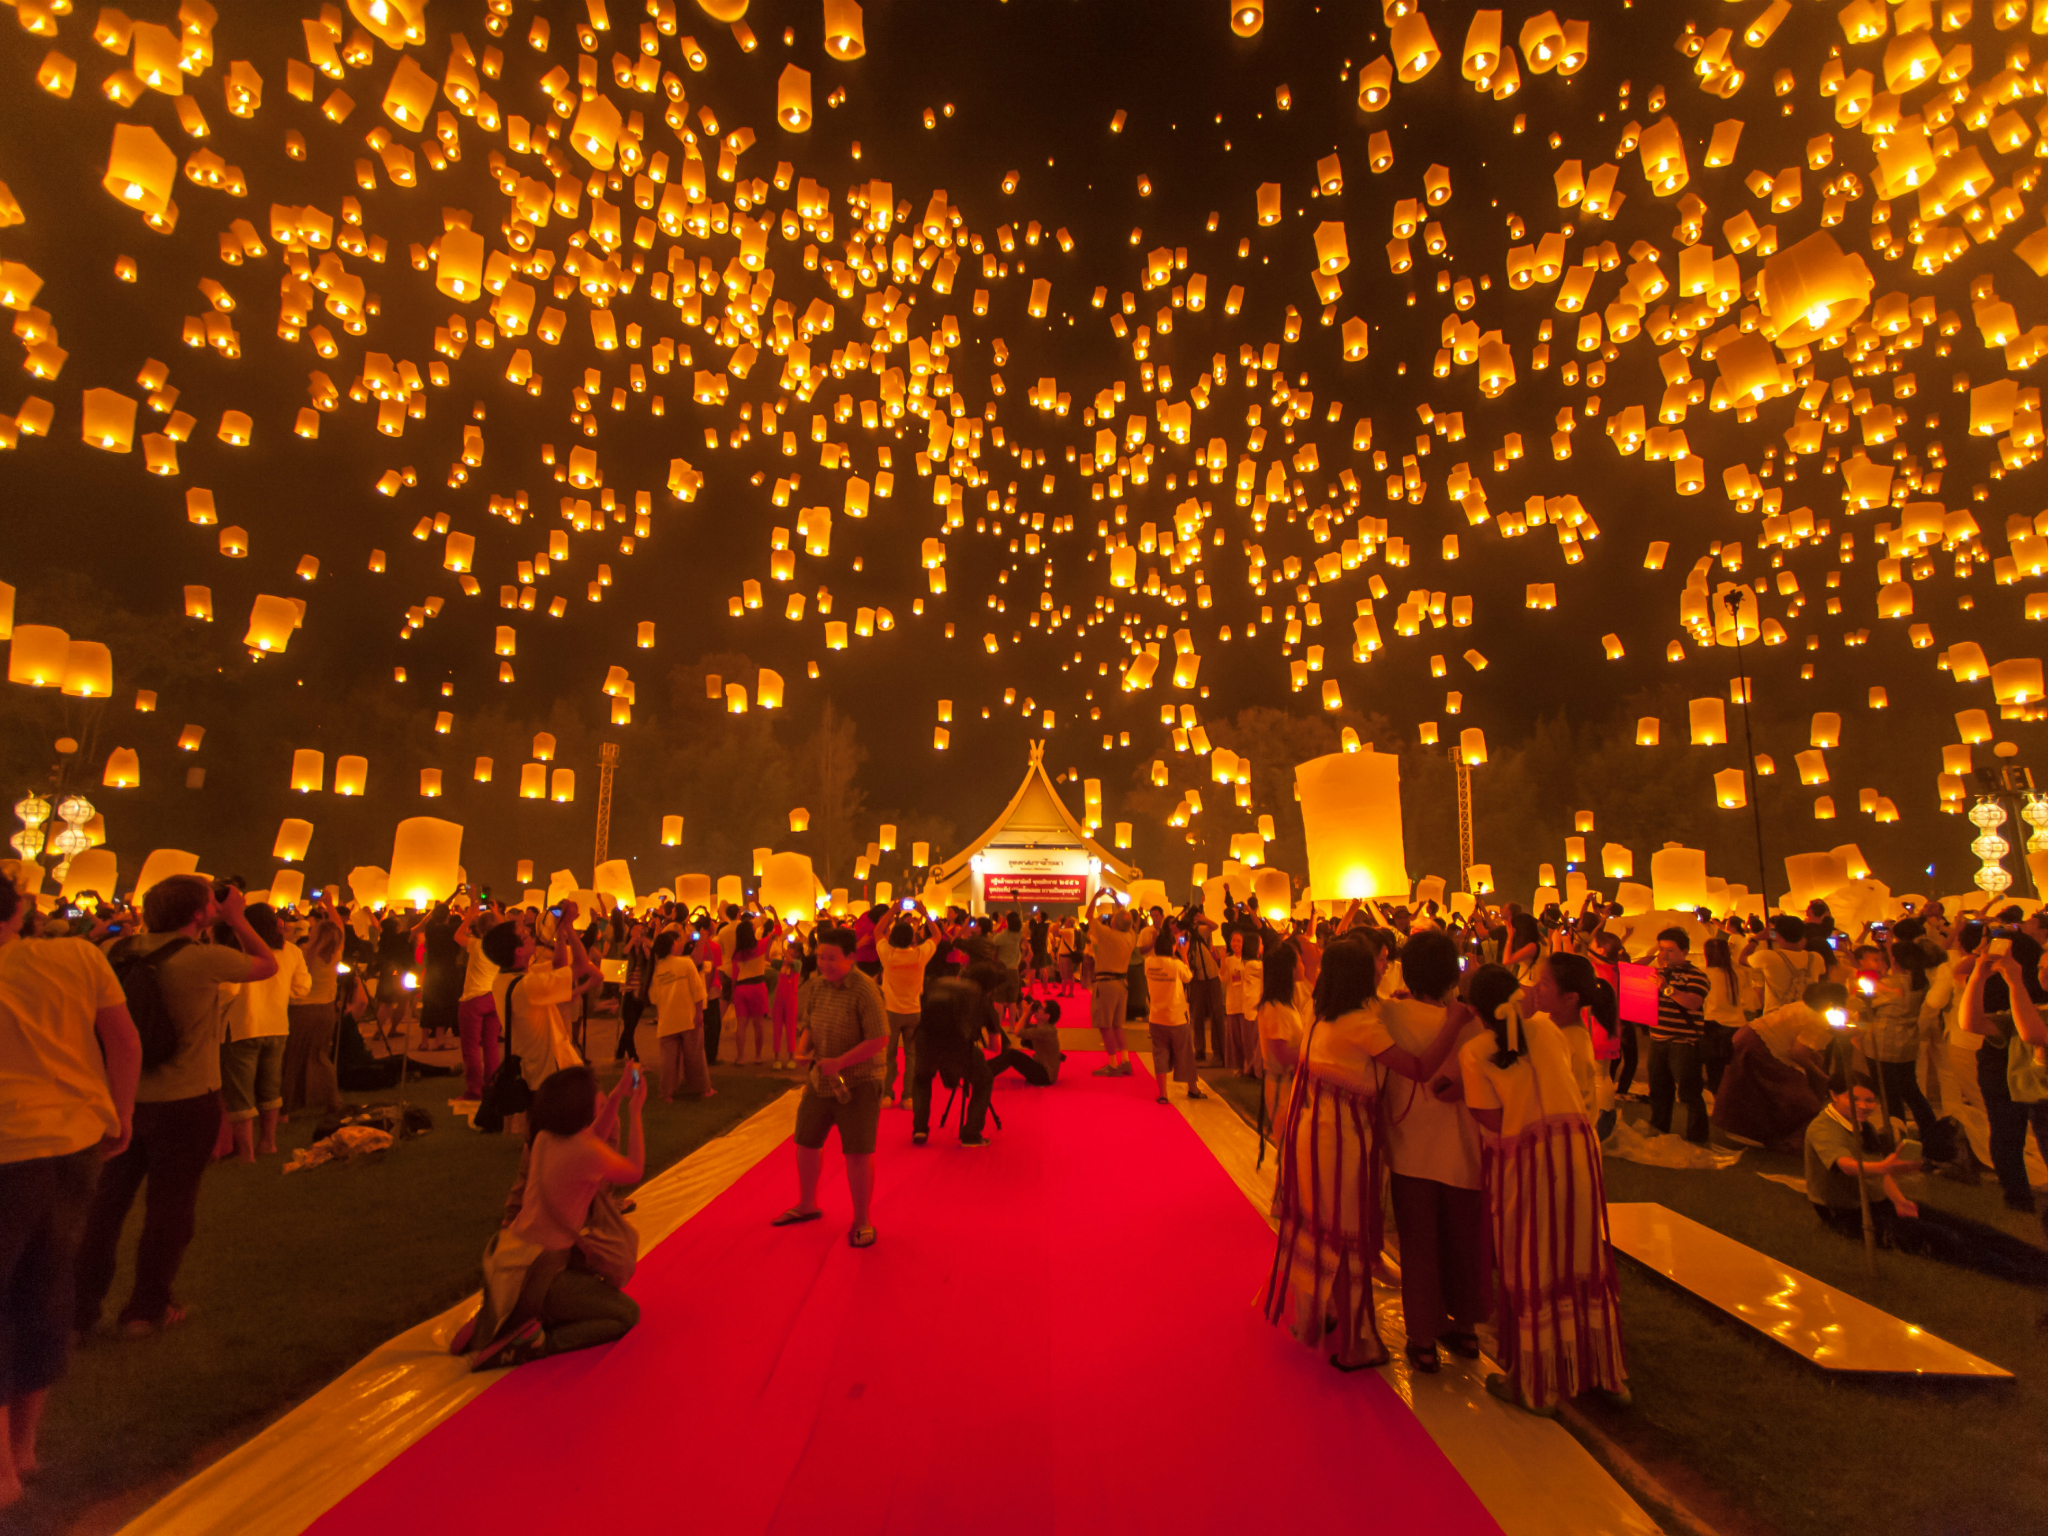 The coolest events on earth this year